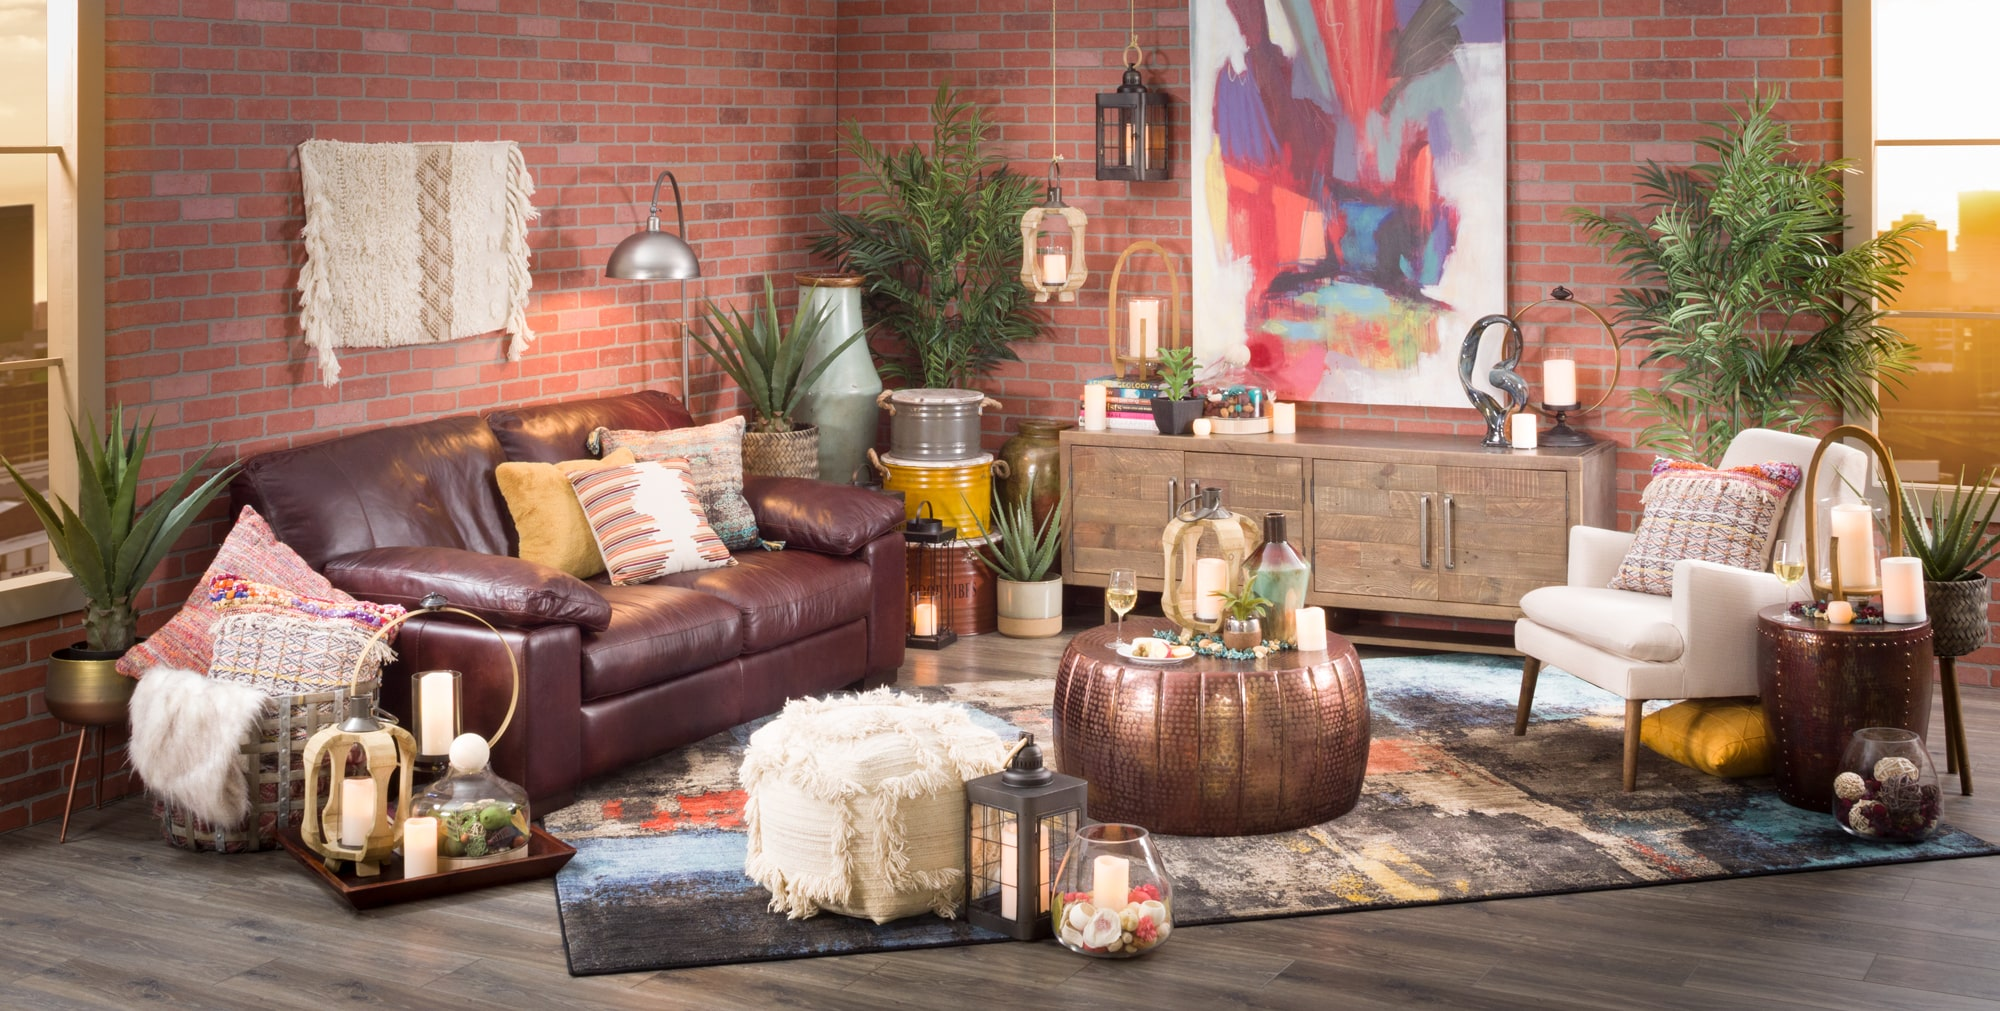 Boho living room with rug